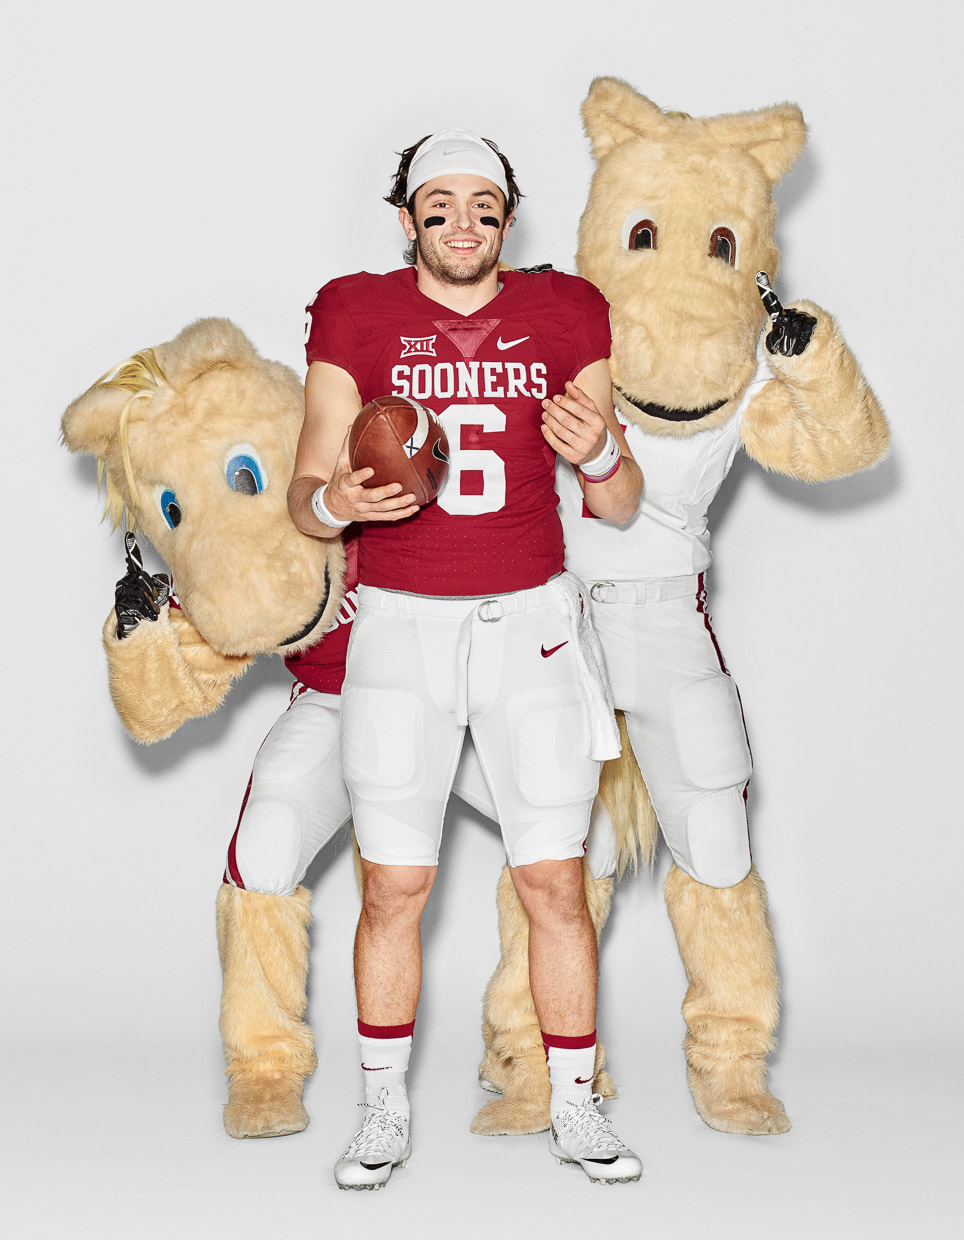 02-ESPN_Baker_Mayfield_shot02-077_03a-RGB